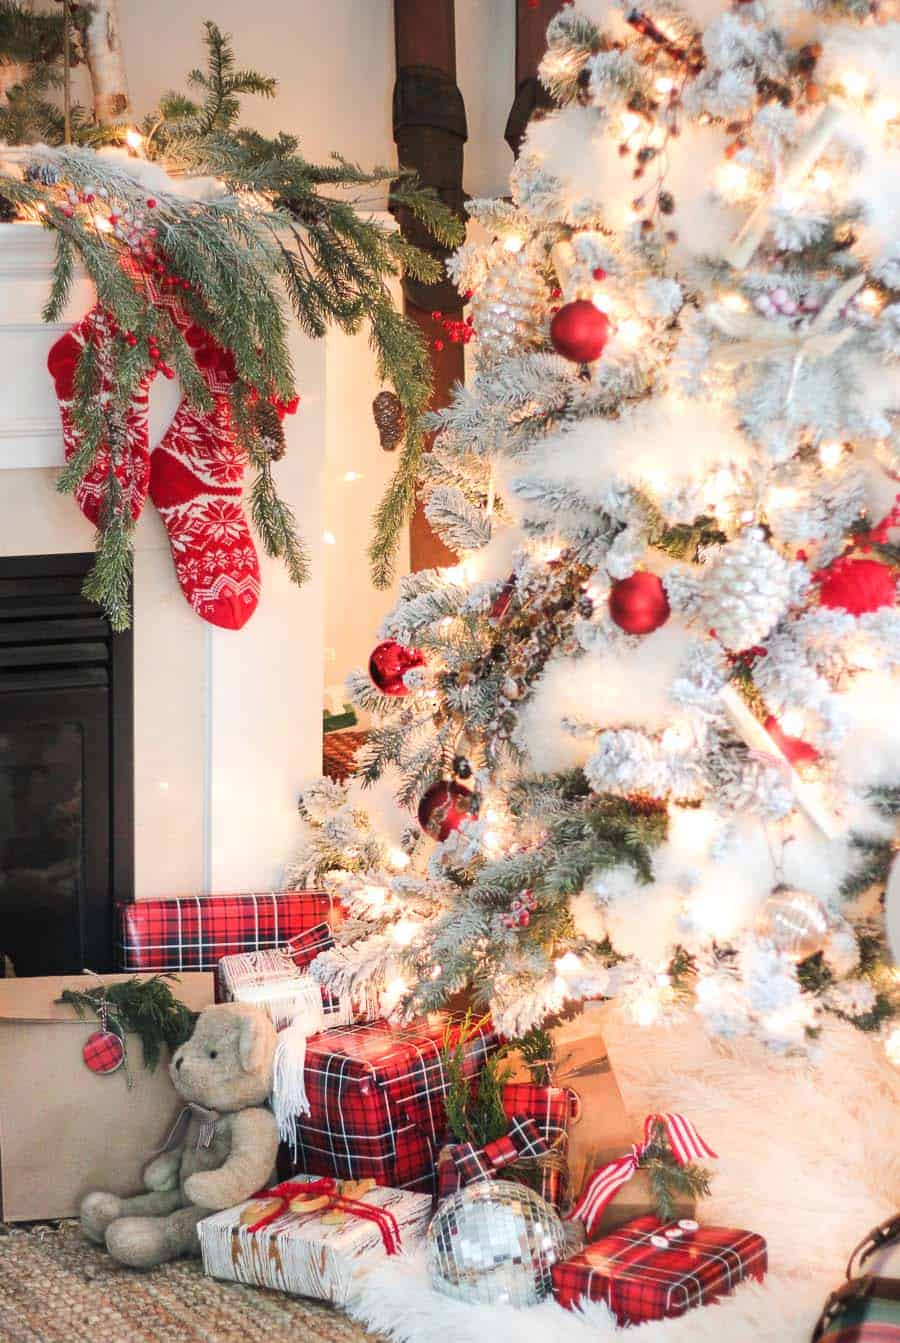 Christmas Decorated Living Rooms 80s: 30+ Fabulous Christmas Decorated Living Rooms To Inspire